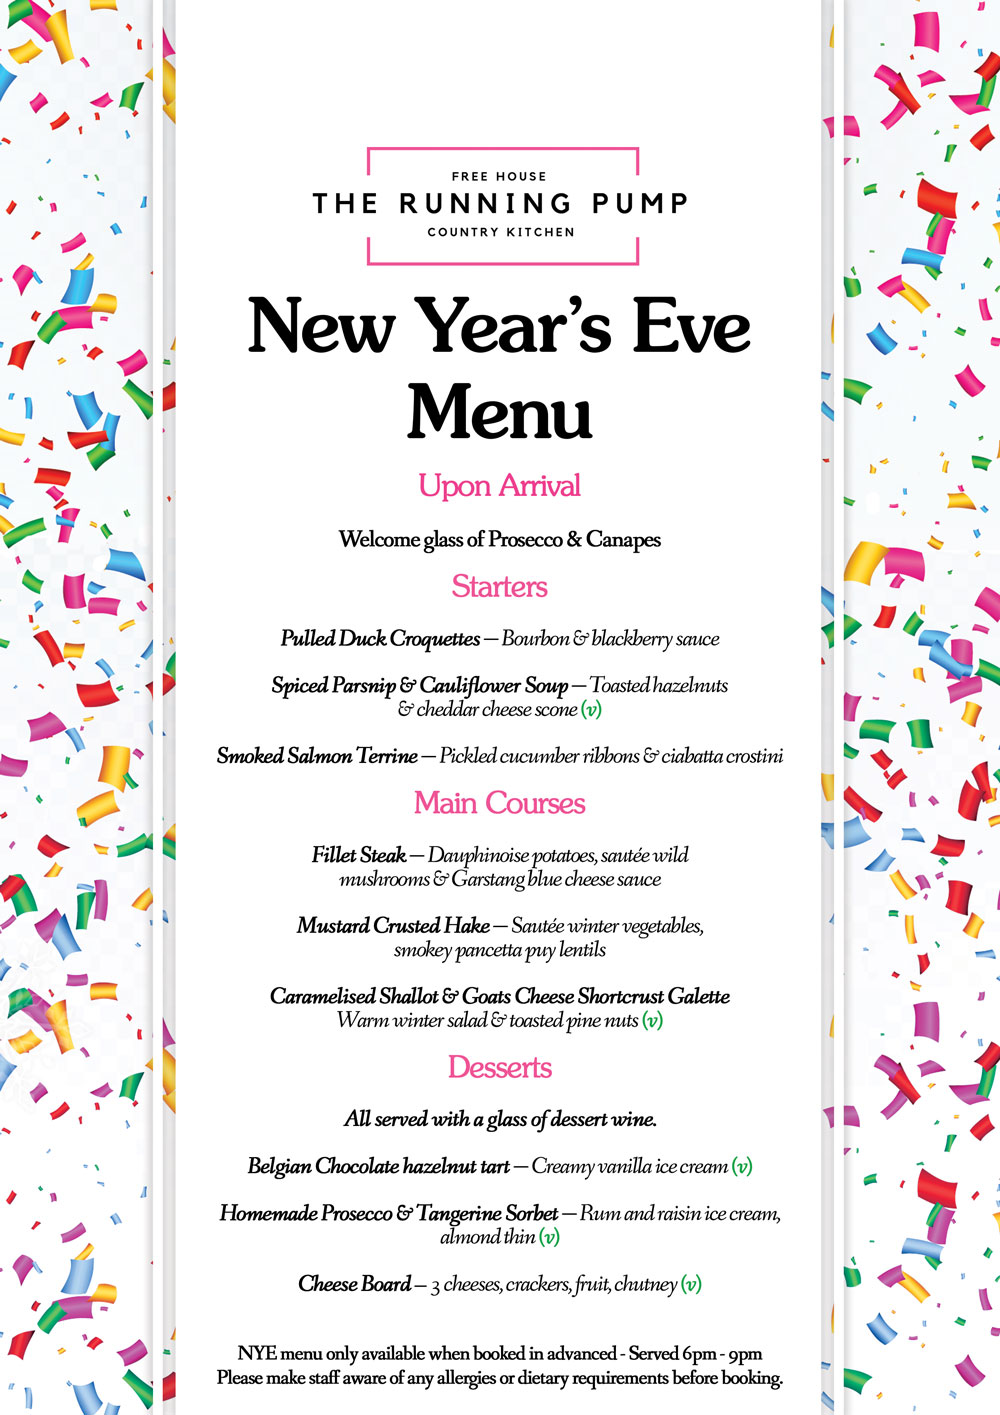 NEW YEAR's EVE MENU - Our special menu, running between 6-9pm on New Year's Eve 2017. Advance booking and pre-order required. Please visit our bookings page or give us a call to book a table. Click the menu to view in full-screen mode.Price - £39.95 per head.